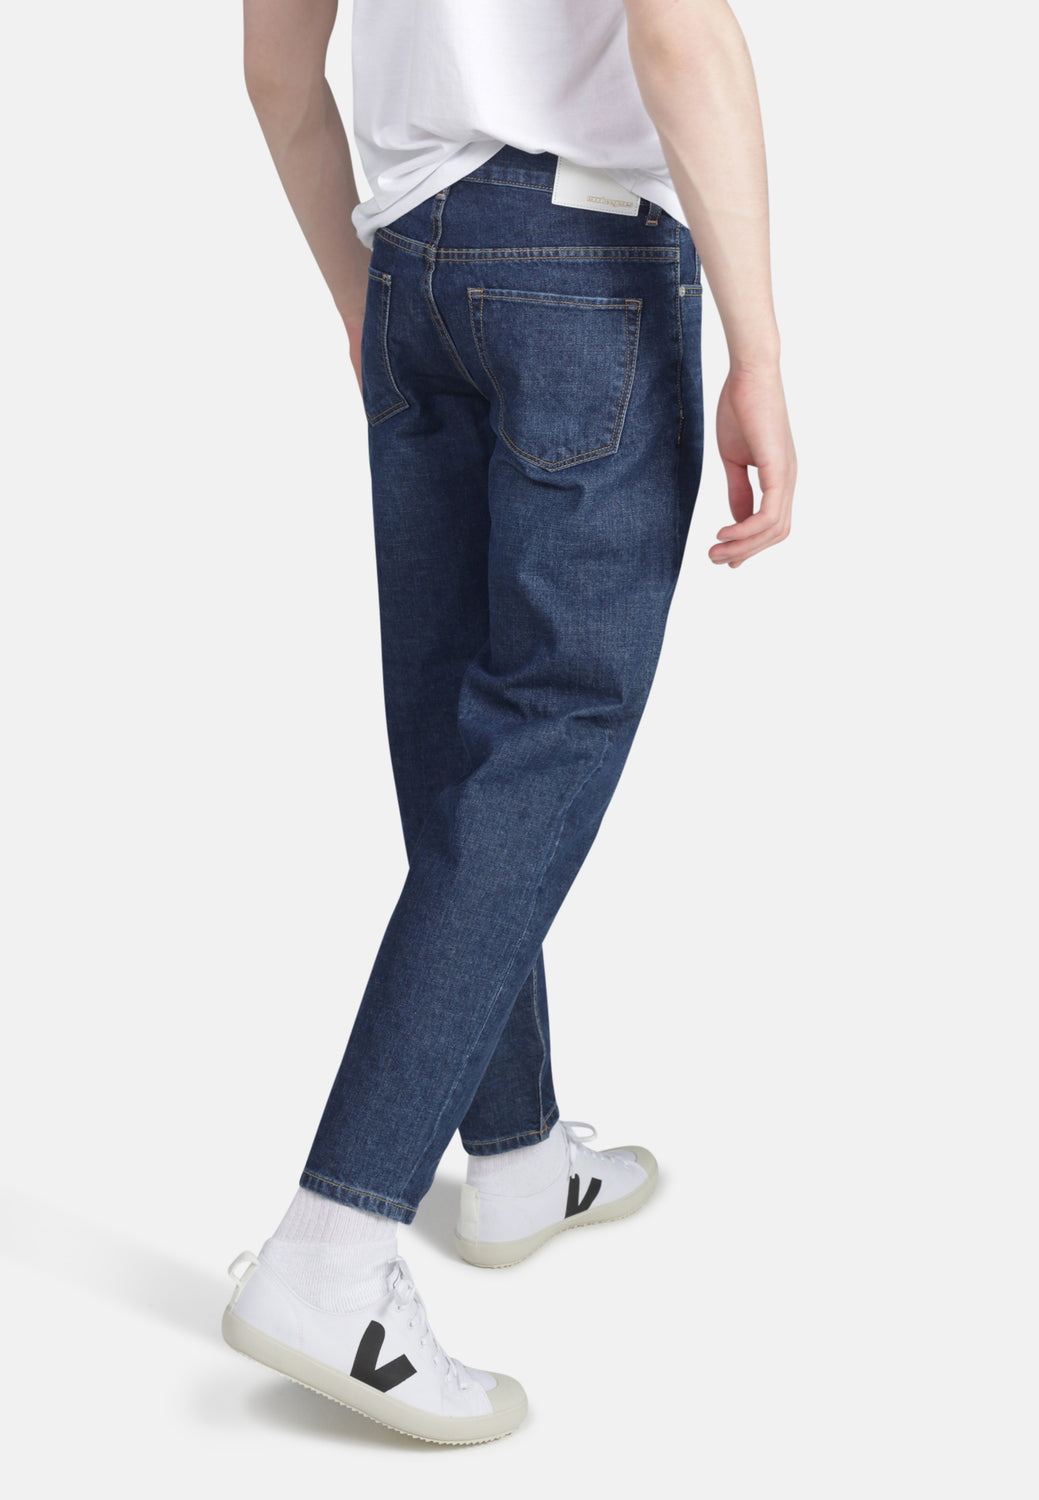 Jack Tapered Fit Organic Jeans in Dark Wash - Monkee Genes Organic Jeans Denim - Men's Tapered Monkee Genes Official  Monkee Genes Official